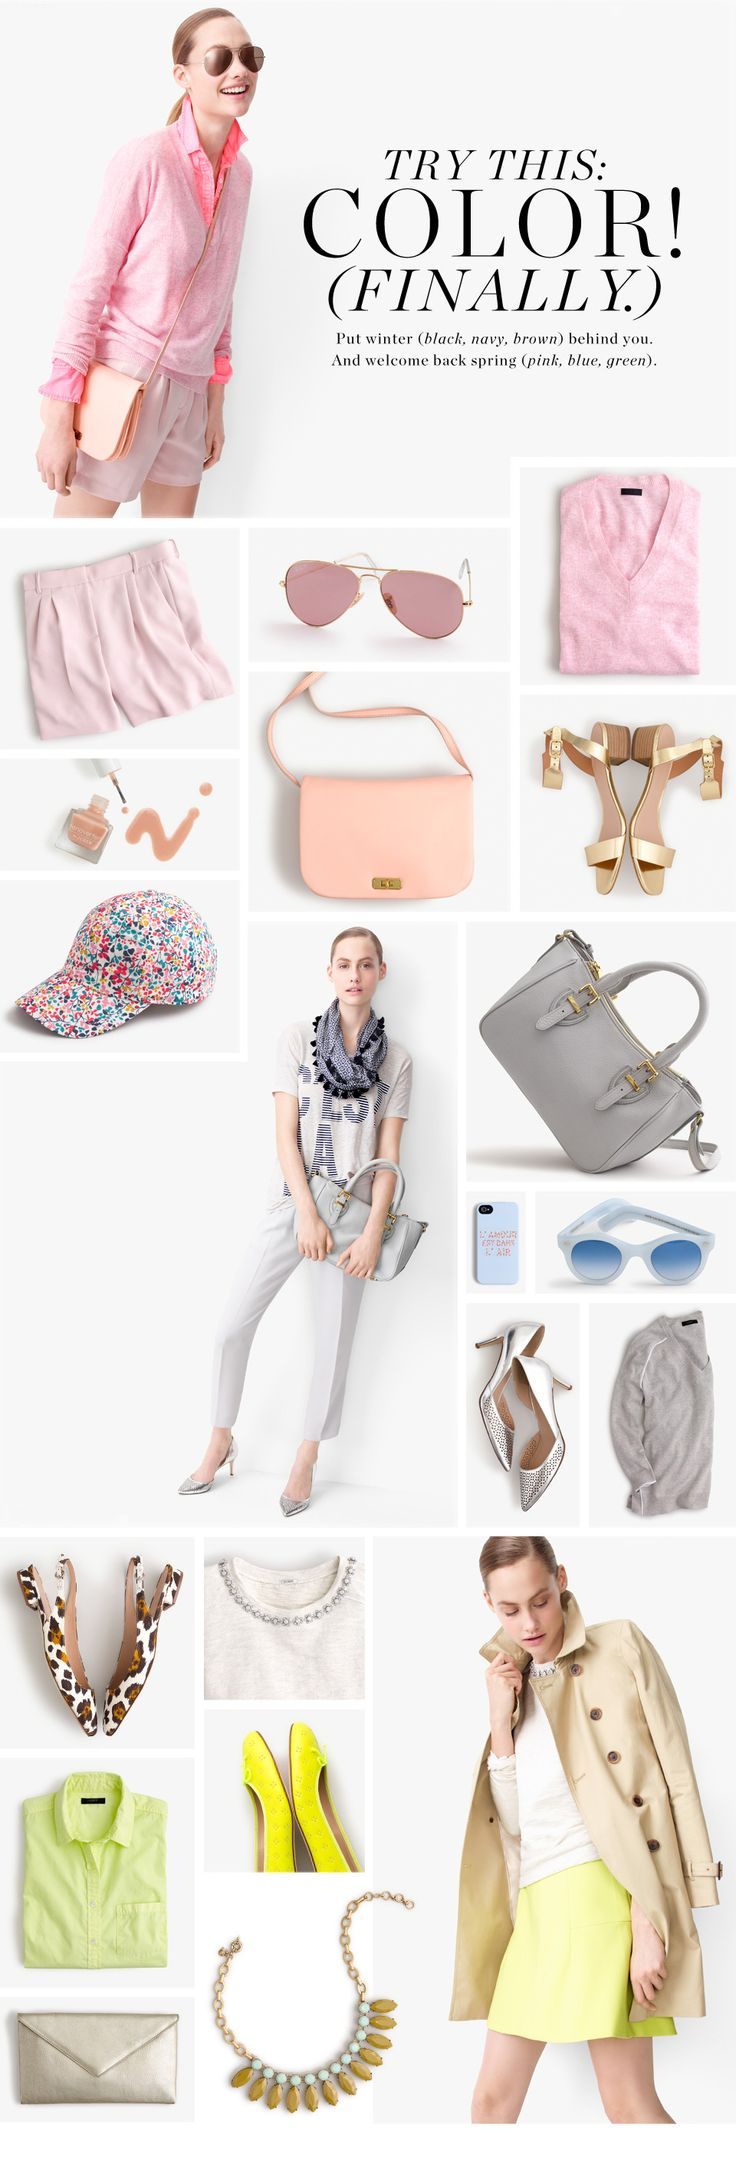 Bring in some new colors for spring at Garden City Center's J. Crew! Open now!